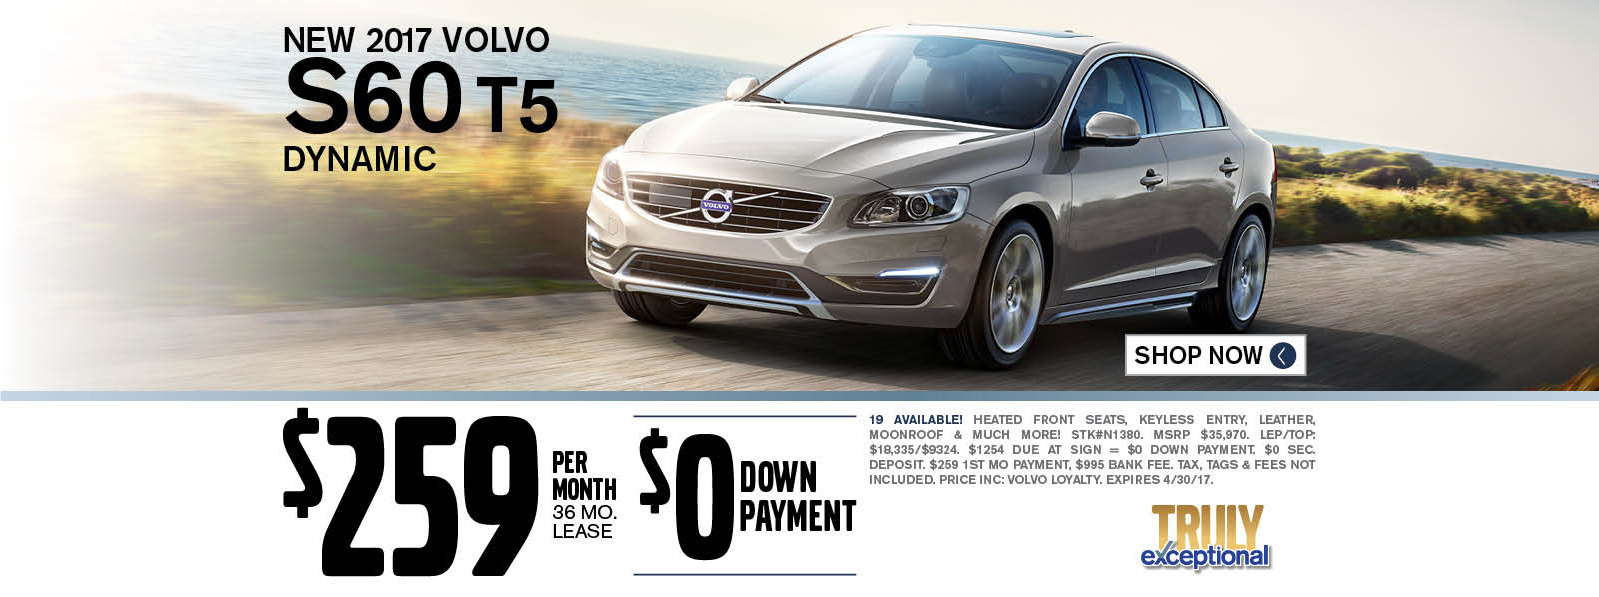 shopping lease featured dynamic volvo en ca cars offers shop tools